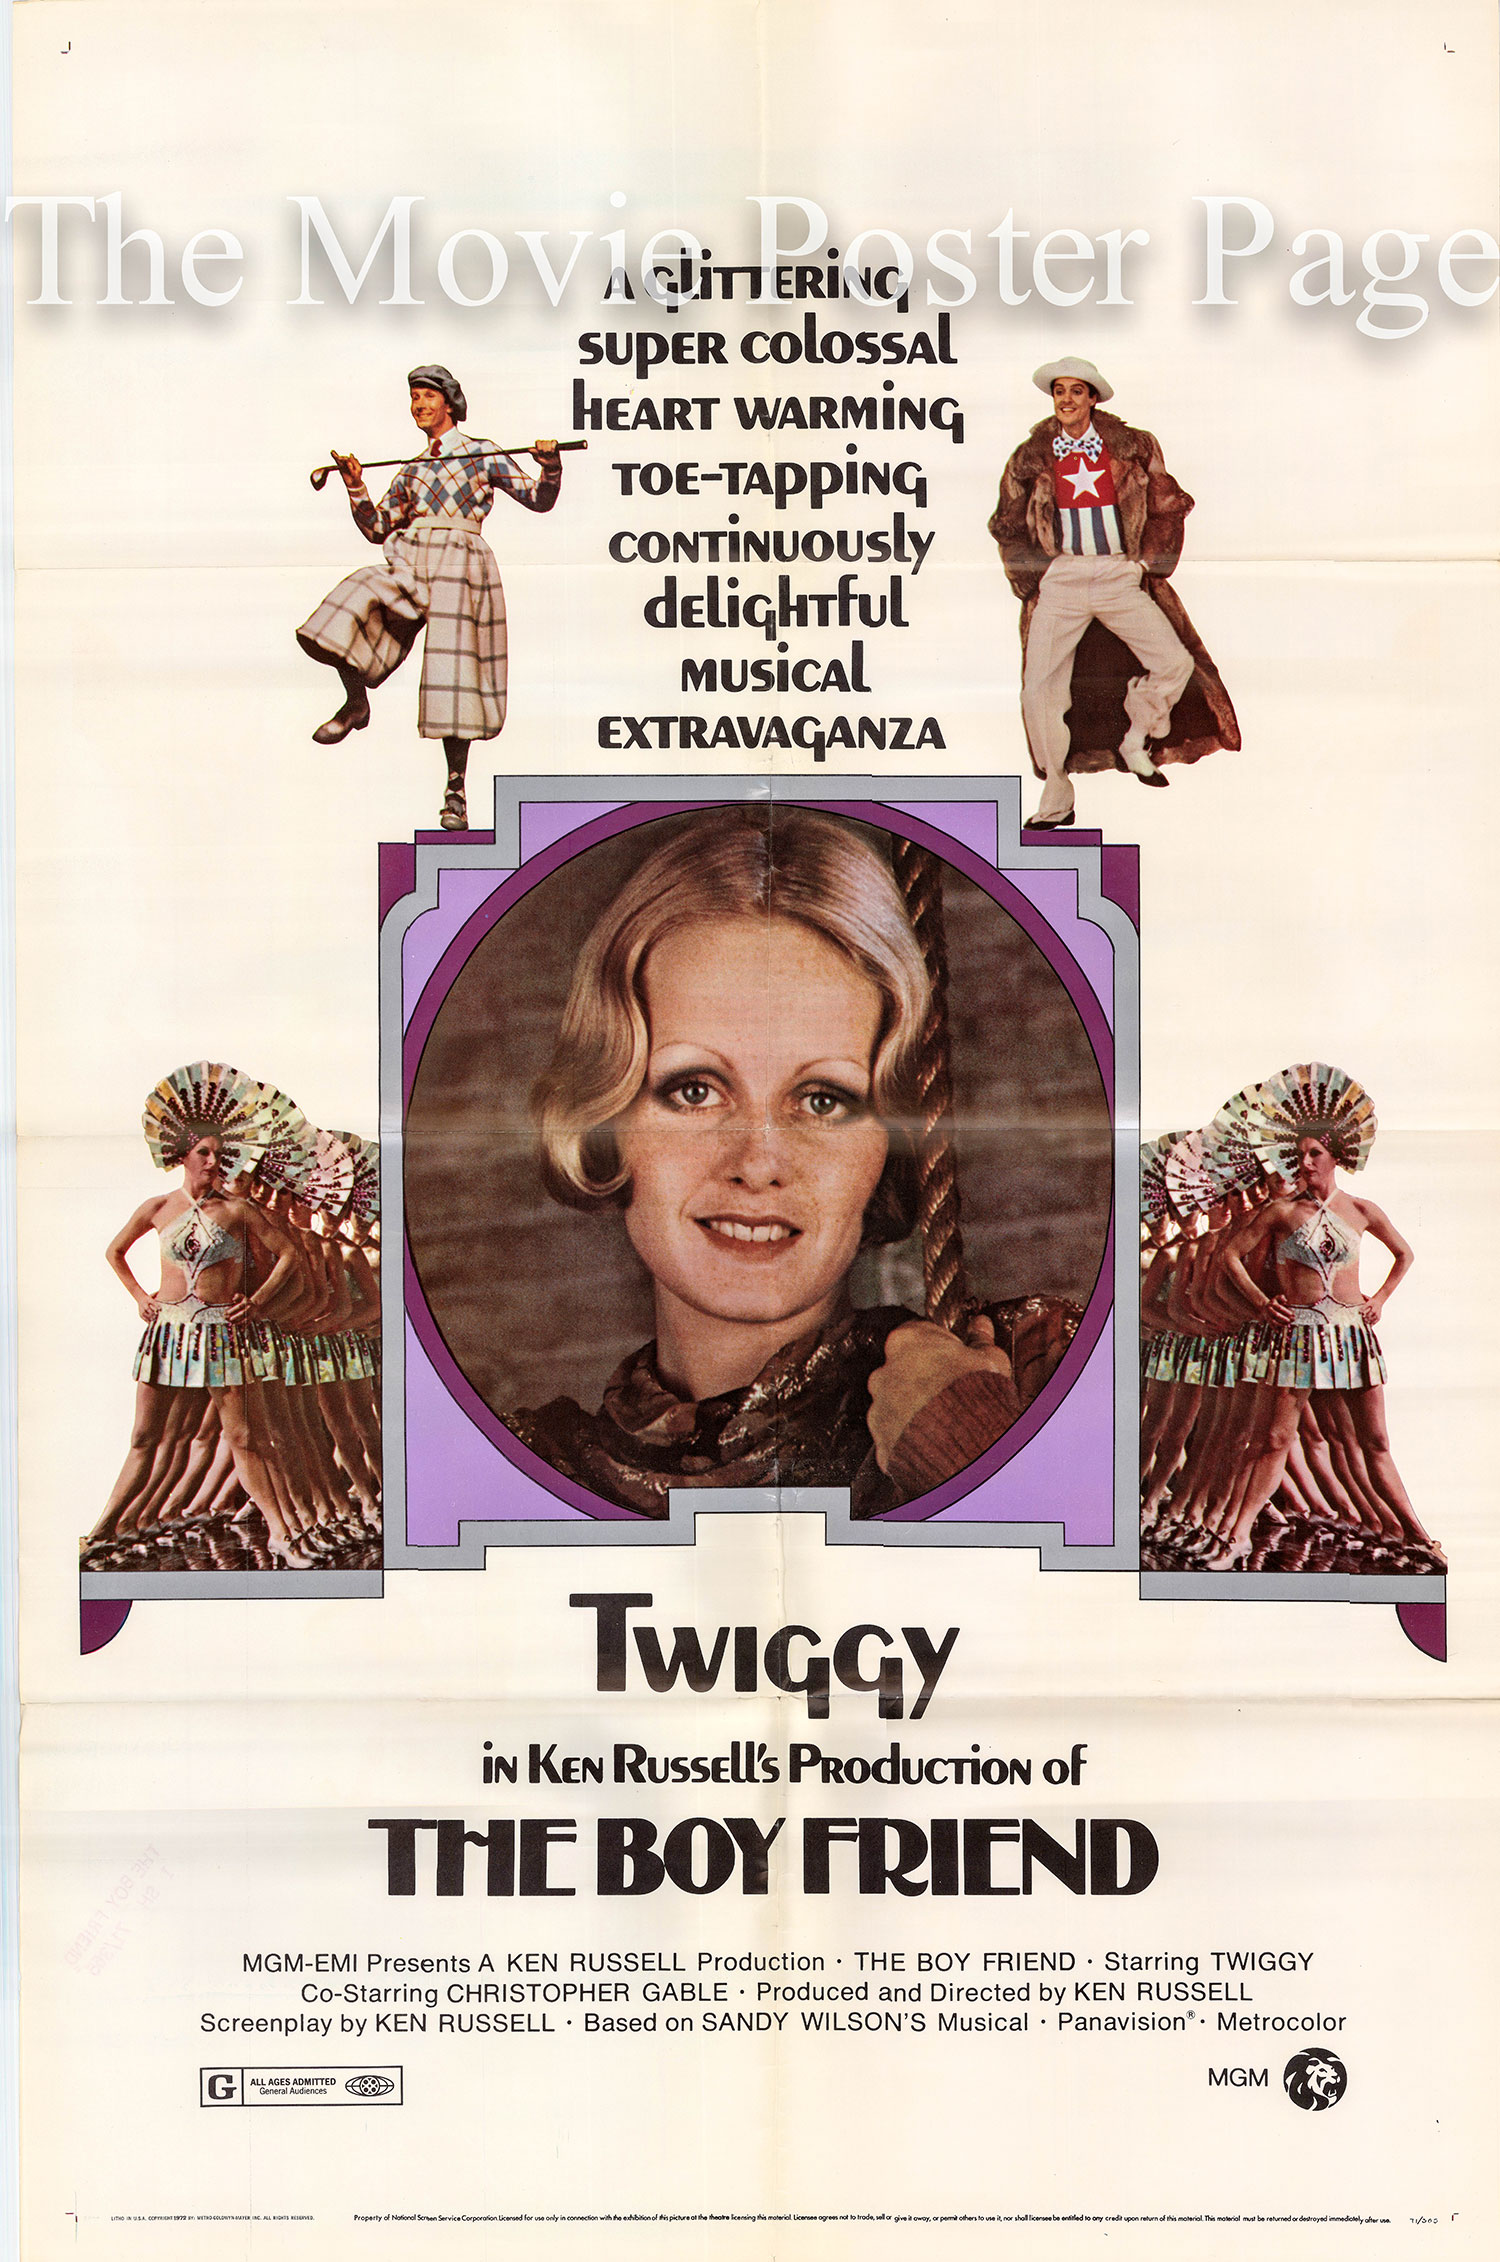 Pictured is a US one-sheet promotional poster for the 1971 Ken Russell film The Boy Friend starring Twiggy as Polly Browne.